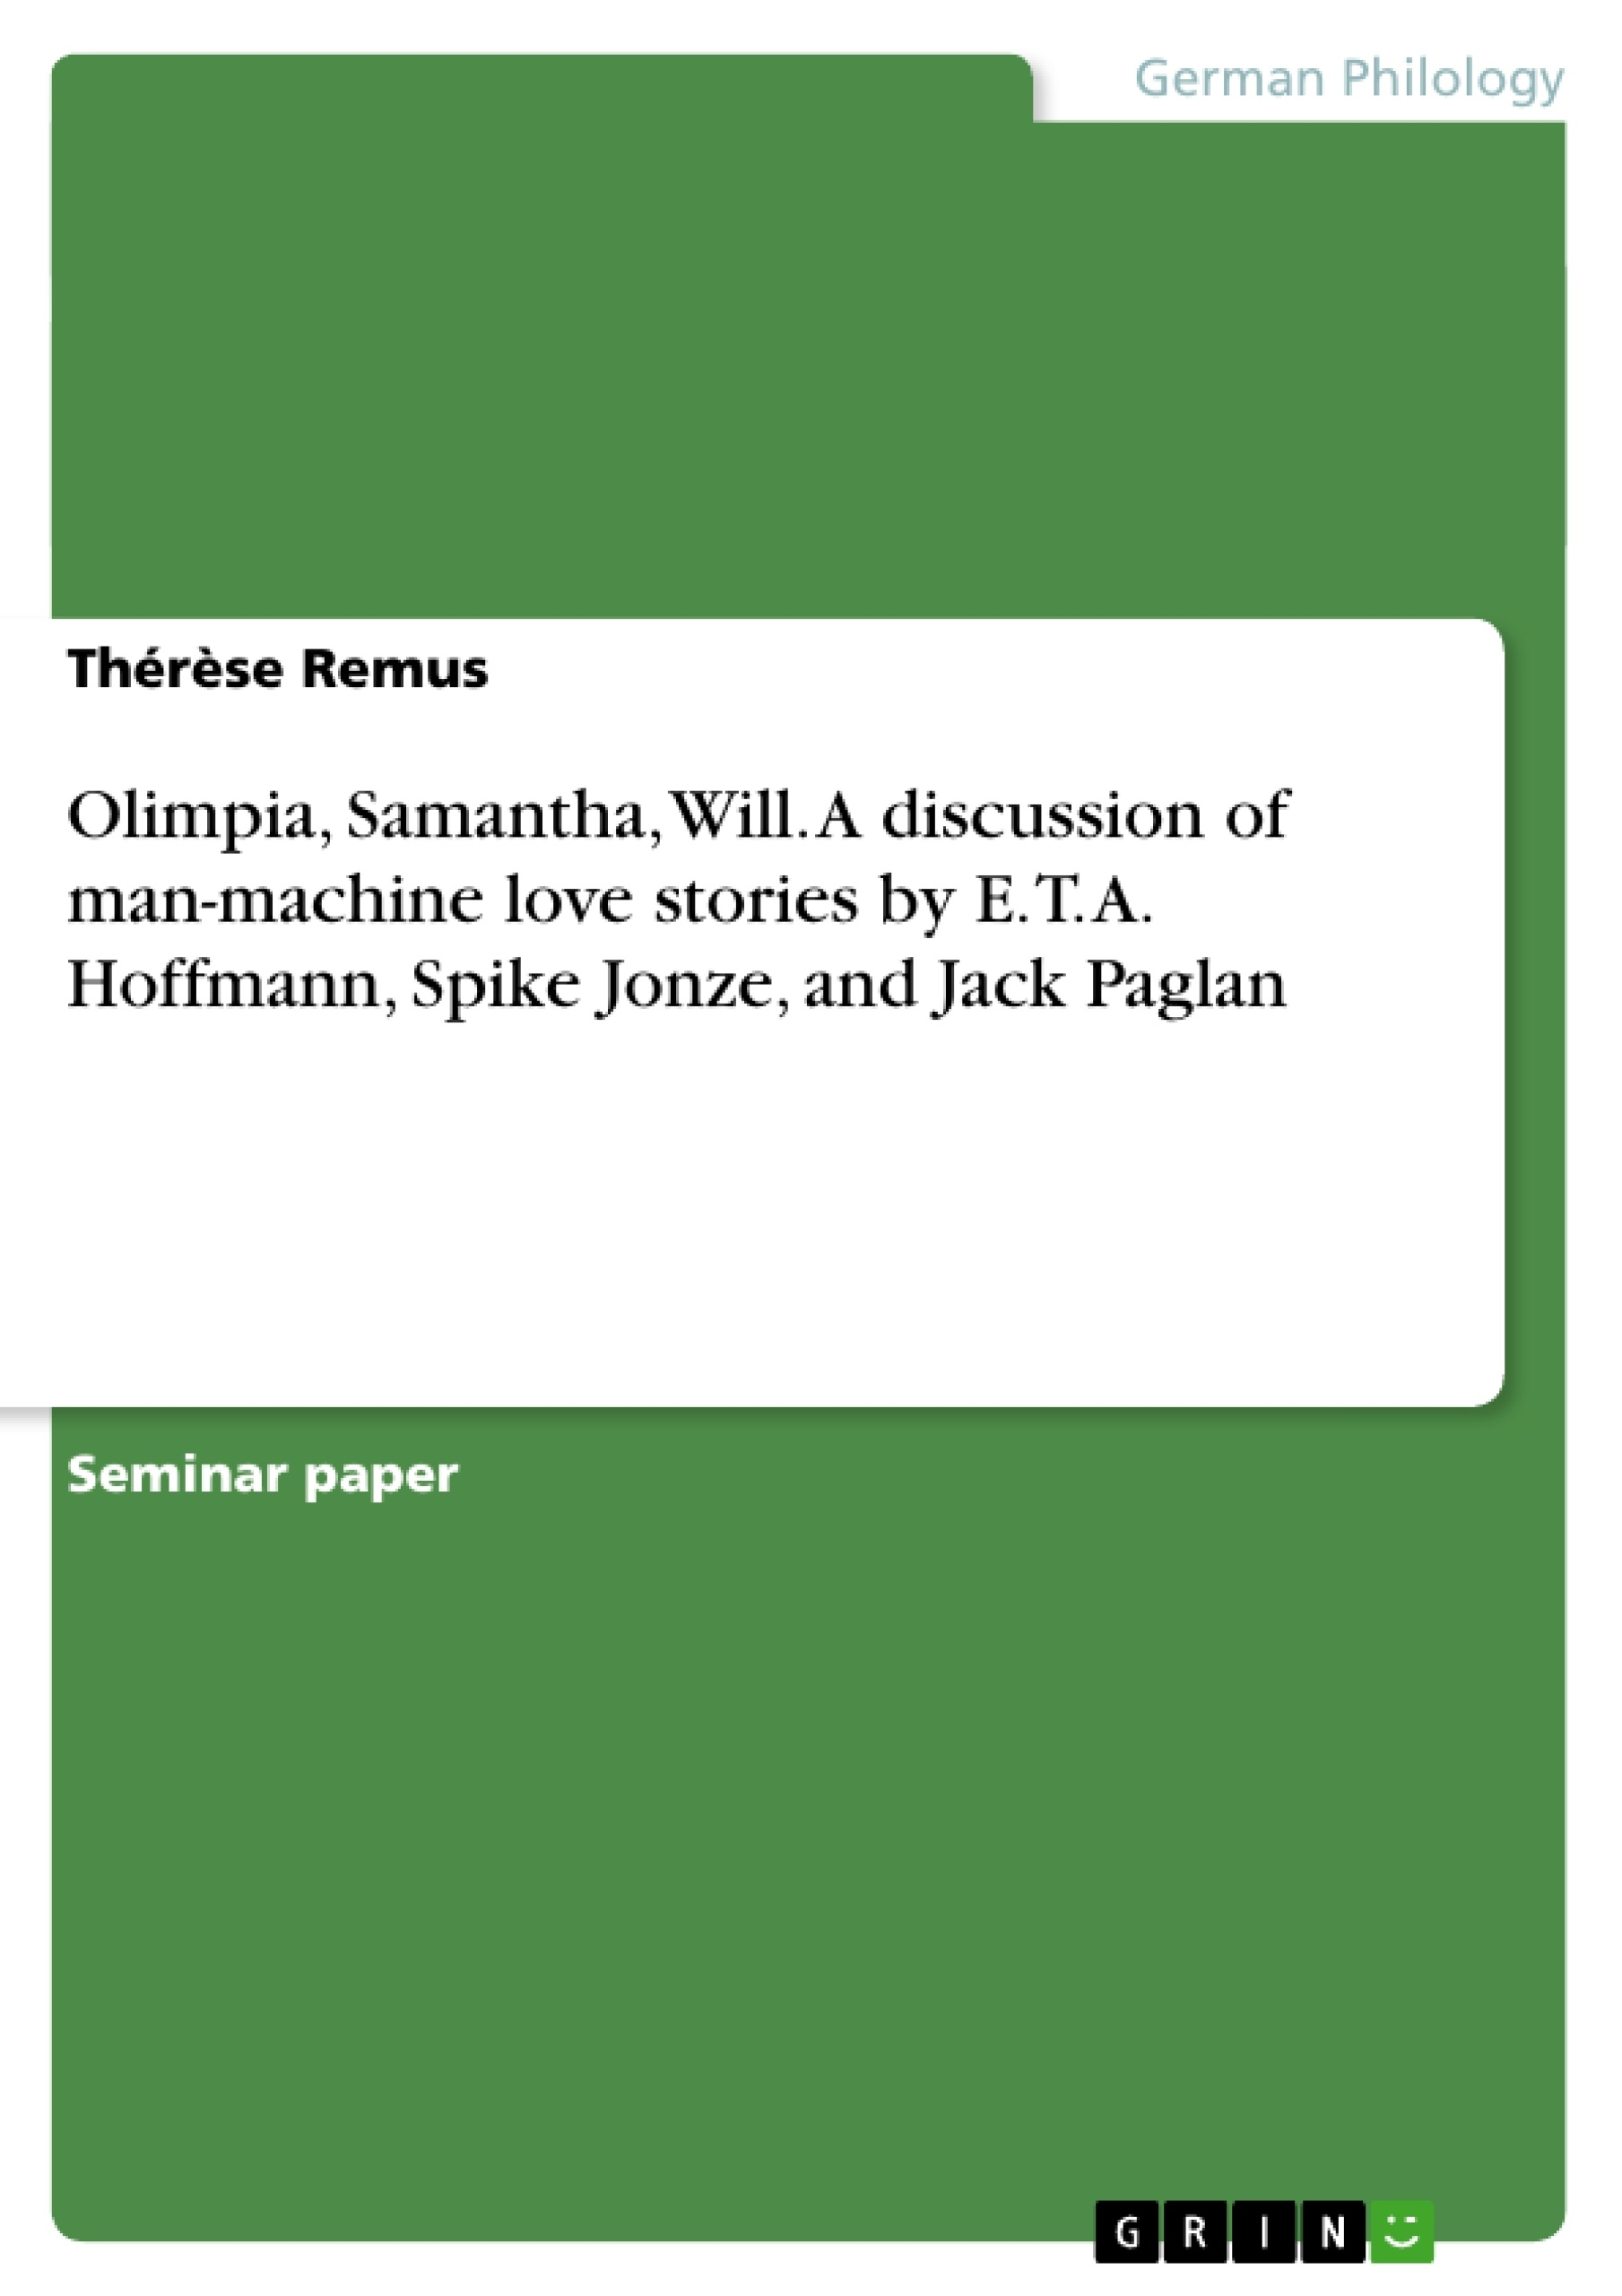 Title: Olimpia, Samantha, Will. A discussion of man-machine love stories by E. T. A. Hoffmann, Spike Jonze, and Jack Paglan